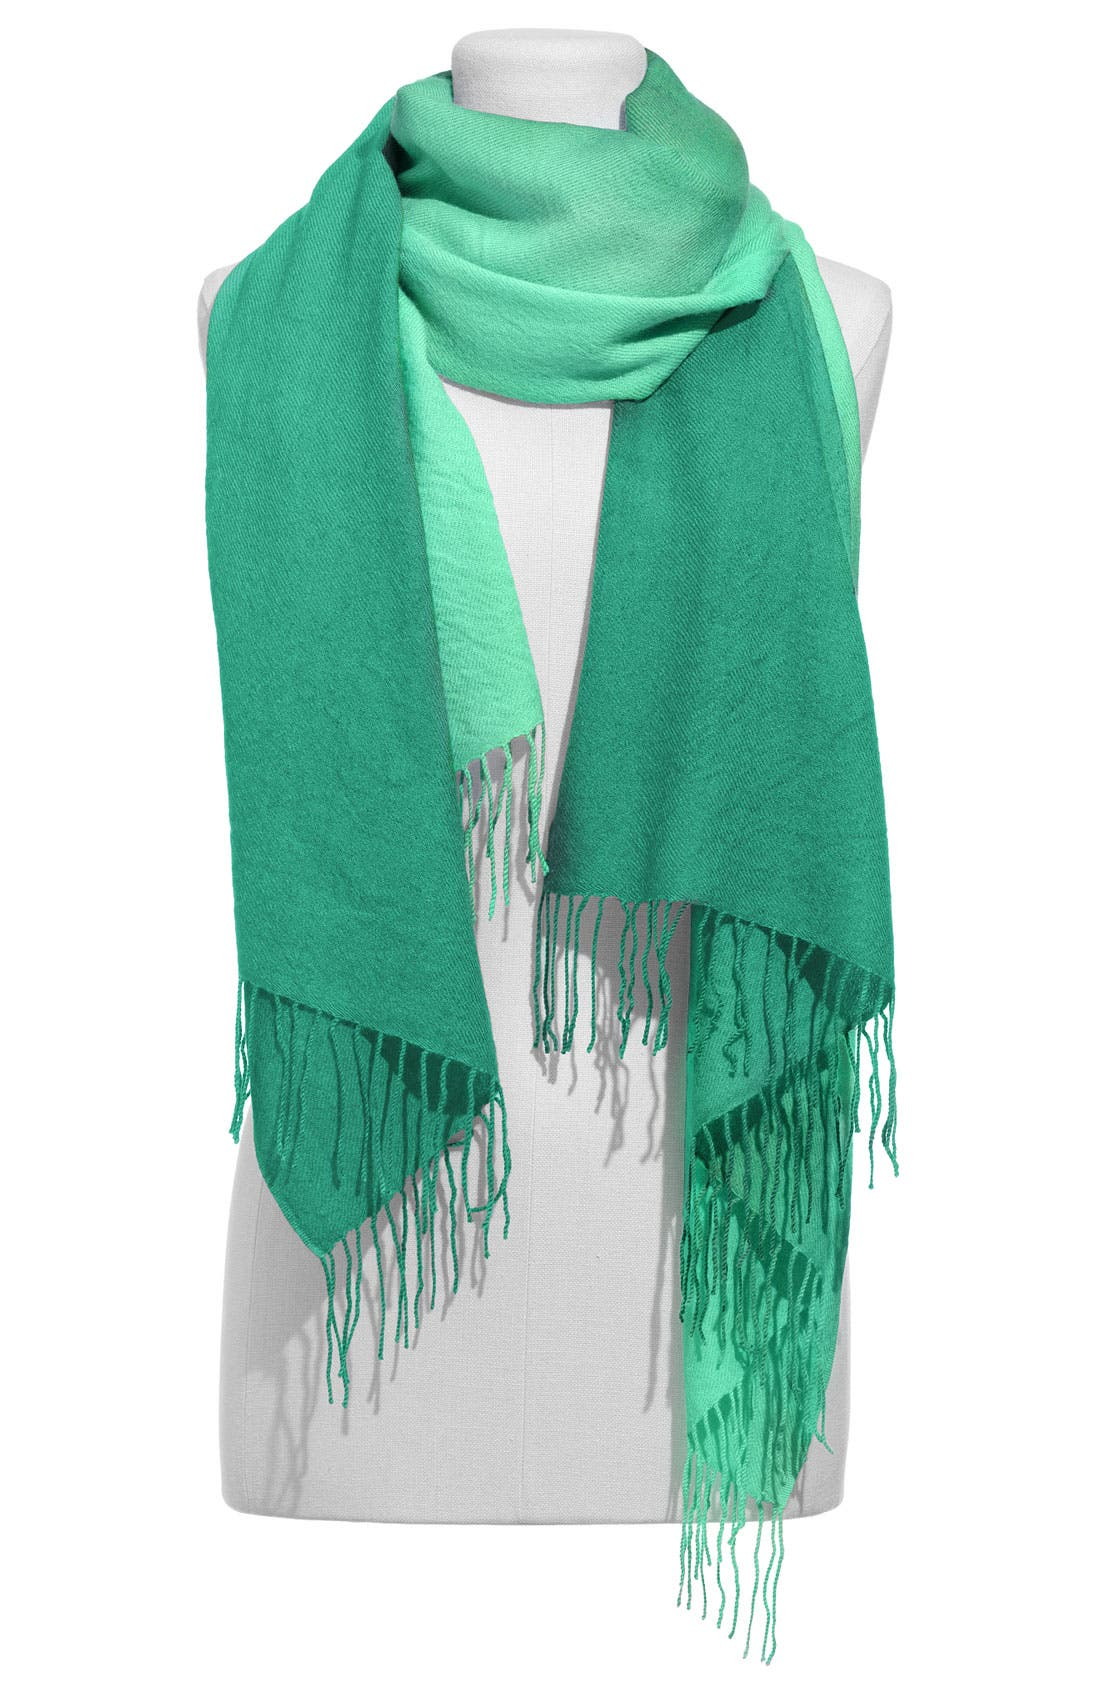 Alternate Image 1 Selected - Nordstrom Tissue Weight Ombré Cashmere & Wool Scarf